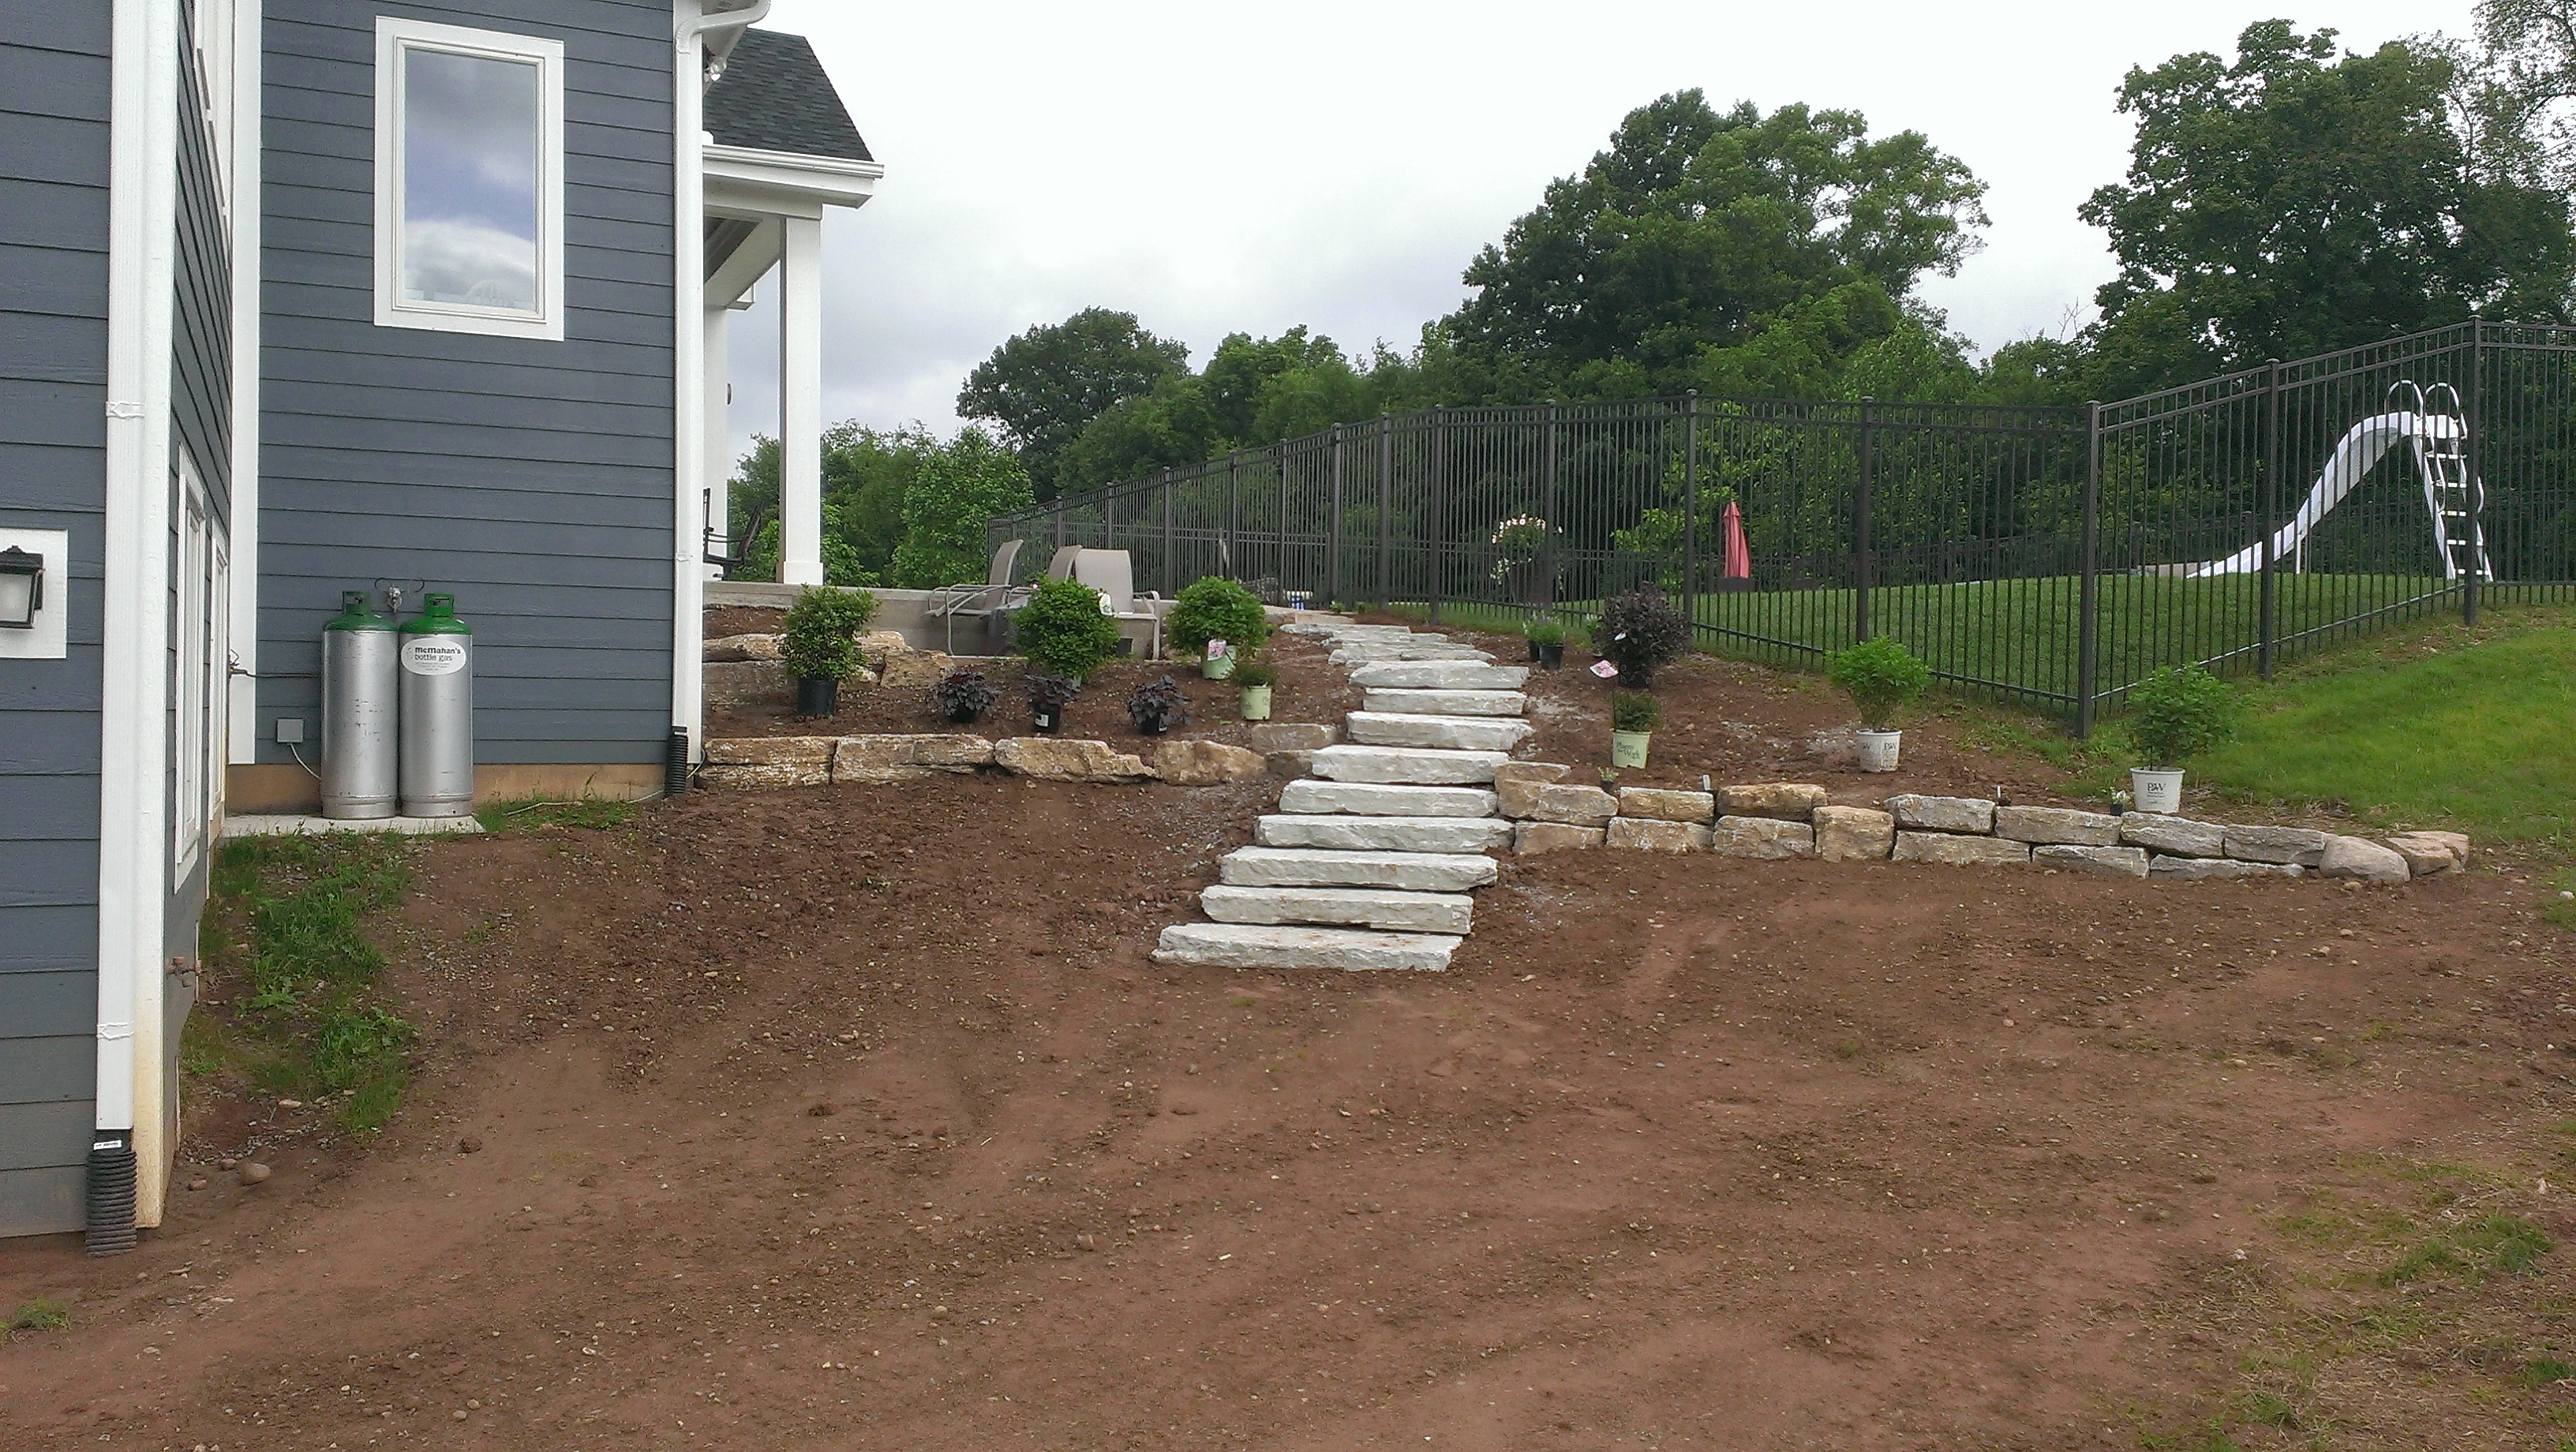 Landscaping in progress Dayton Ohio